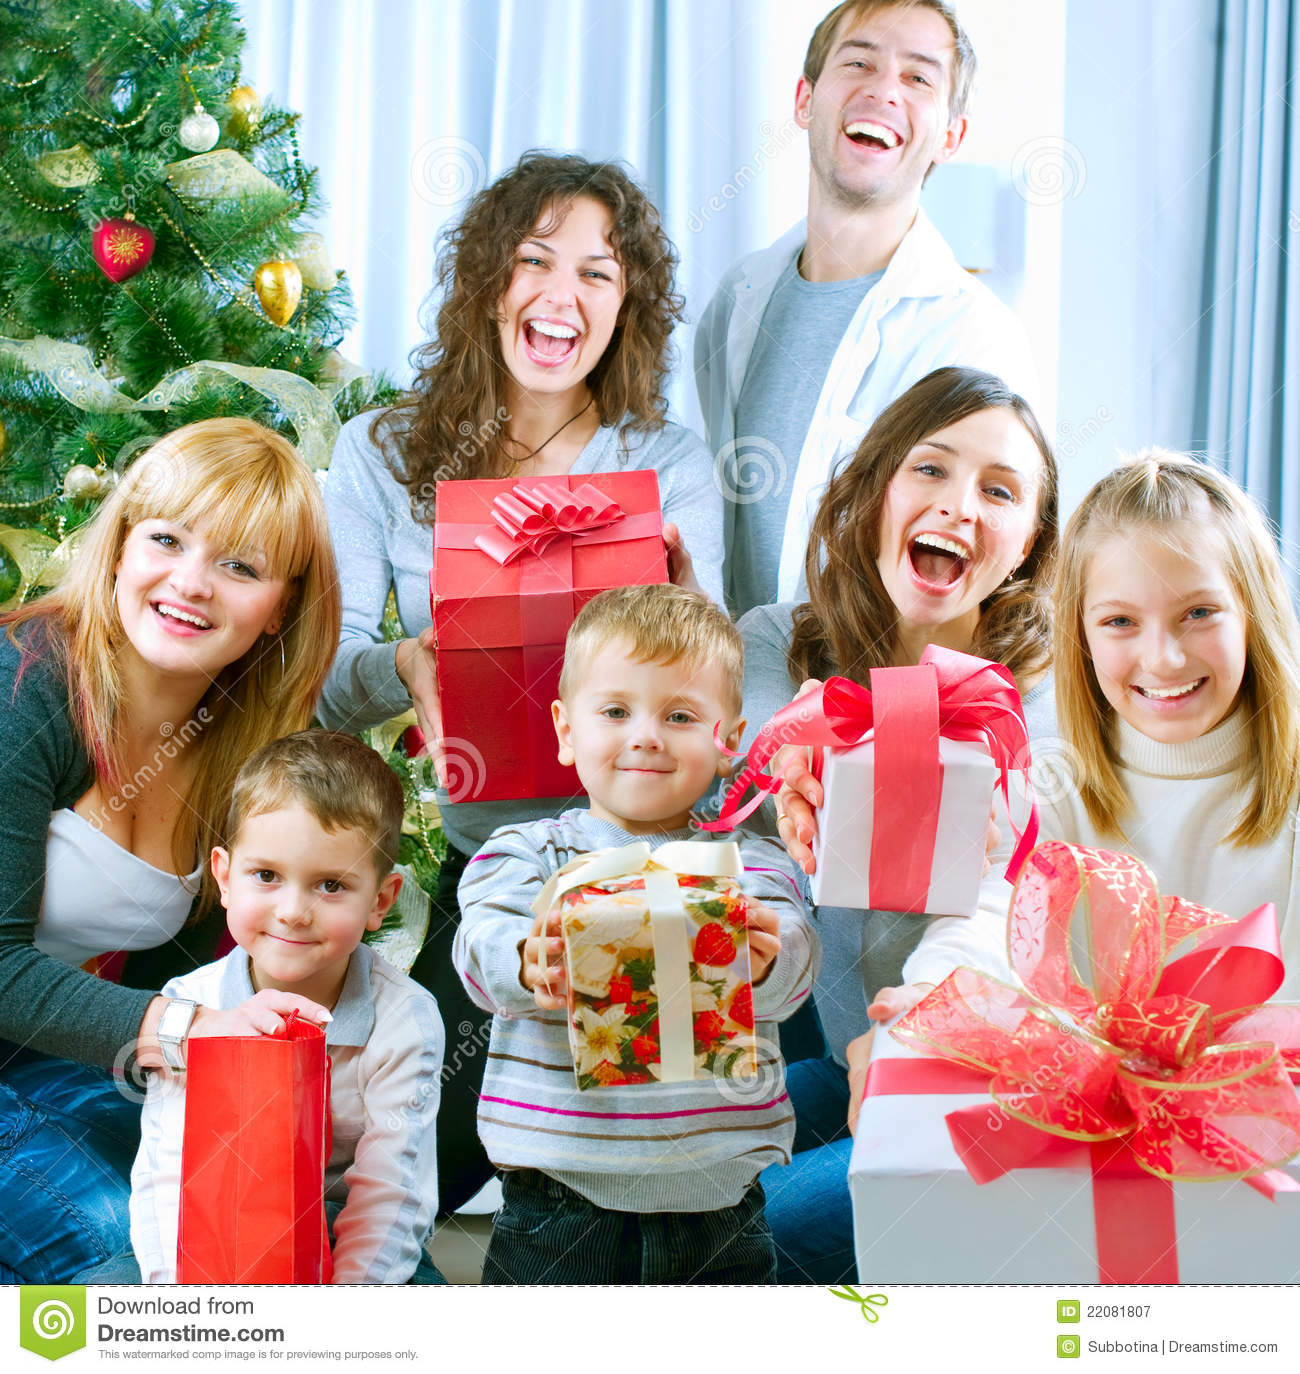 Happy Family Celebrating Christmas.gifts Stock Photo 22081807 - Megapixl